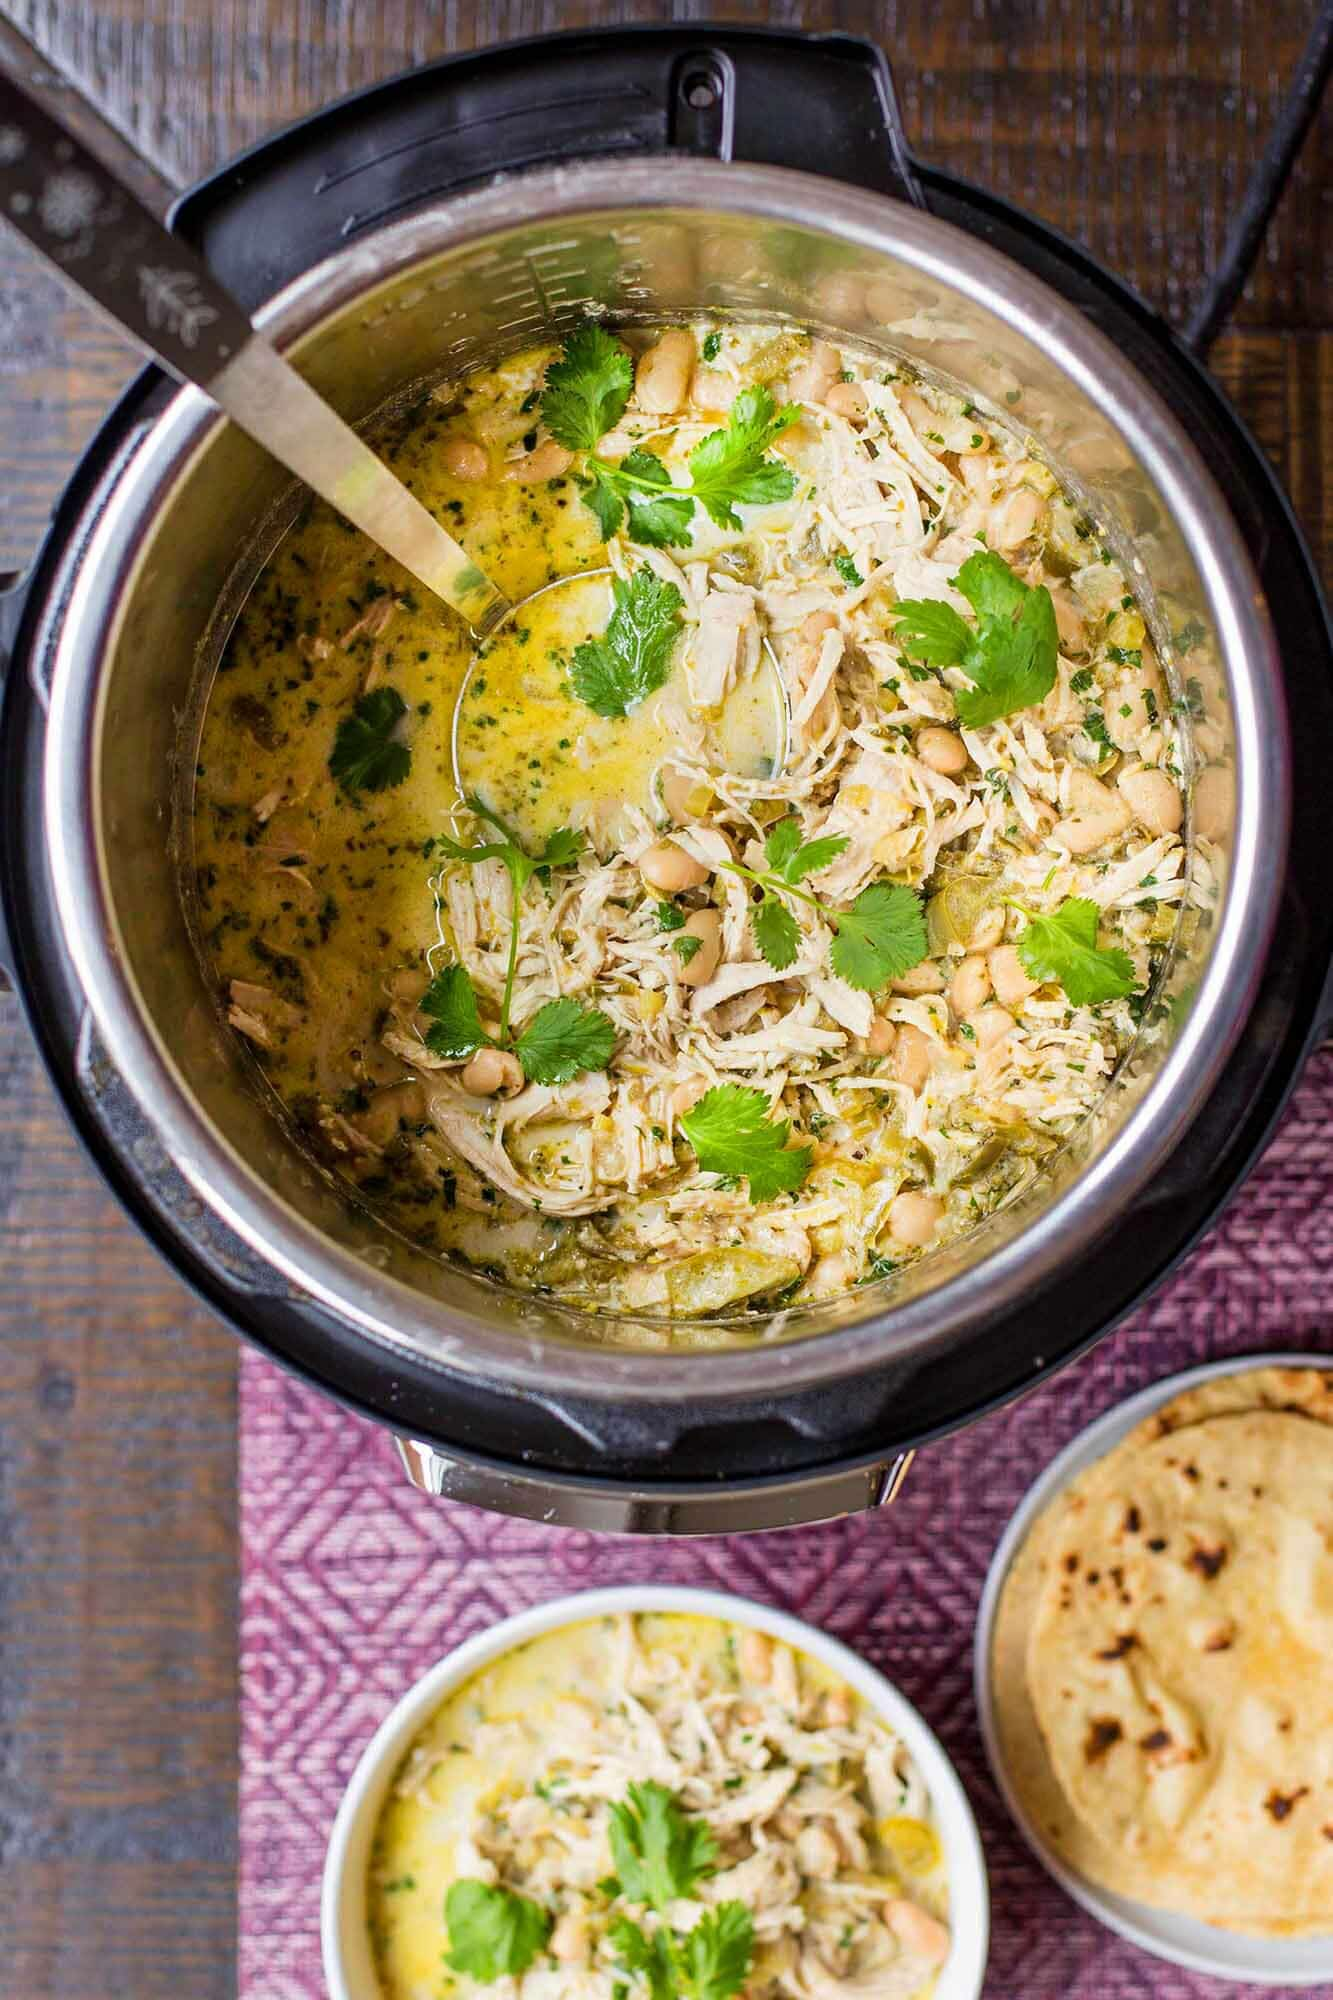 Instant Pot White Chicken Chili from Simply Recipes